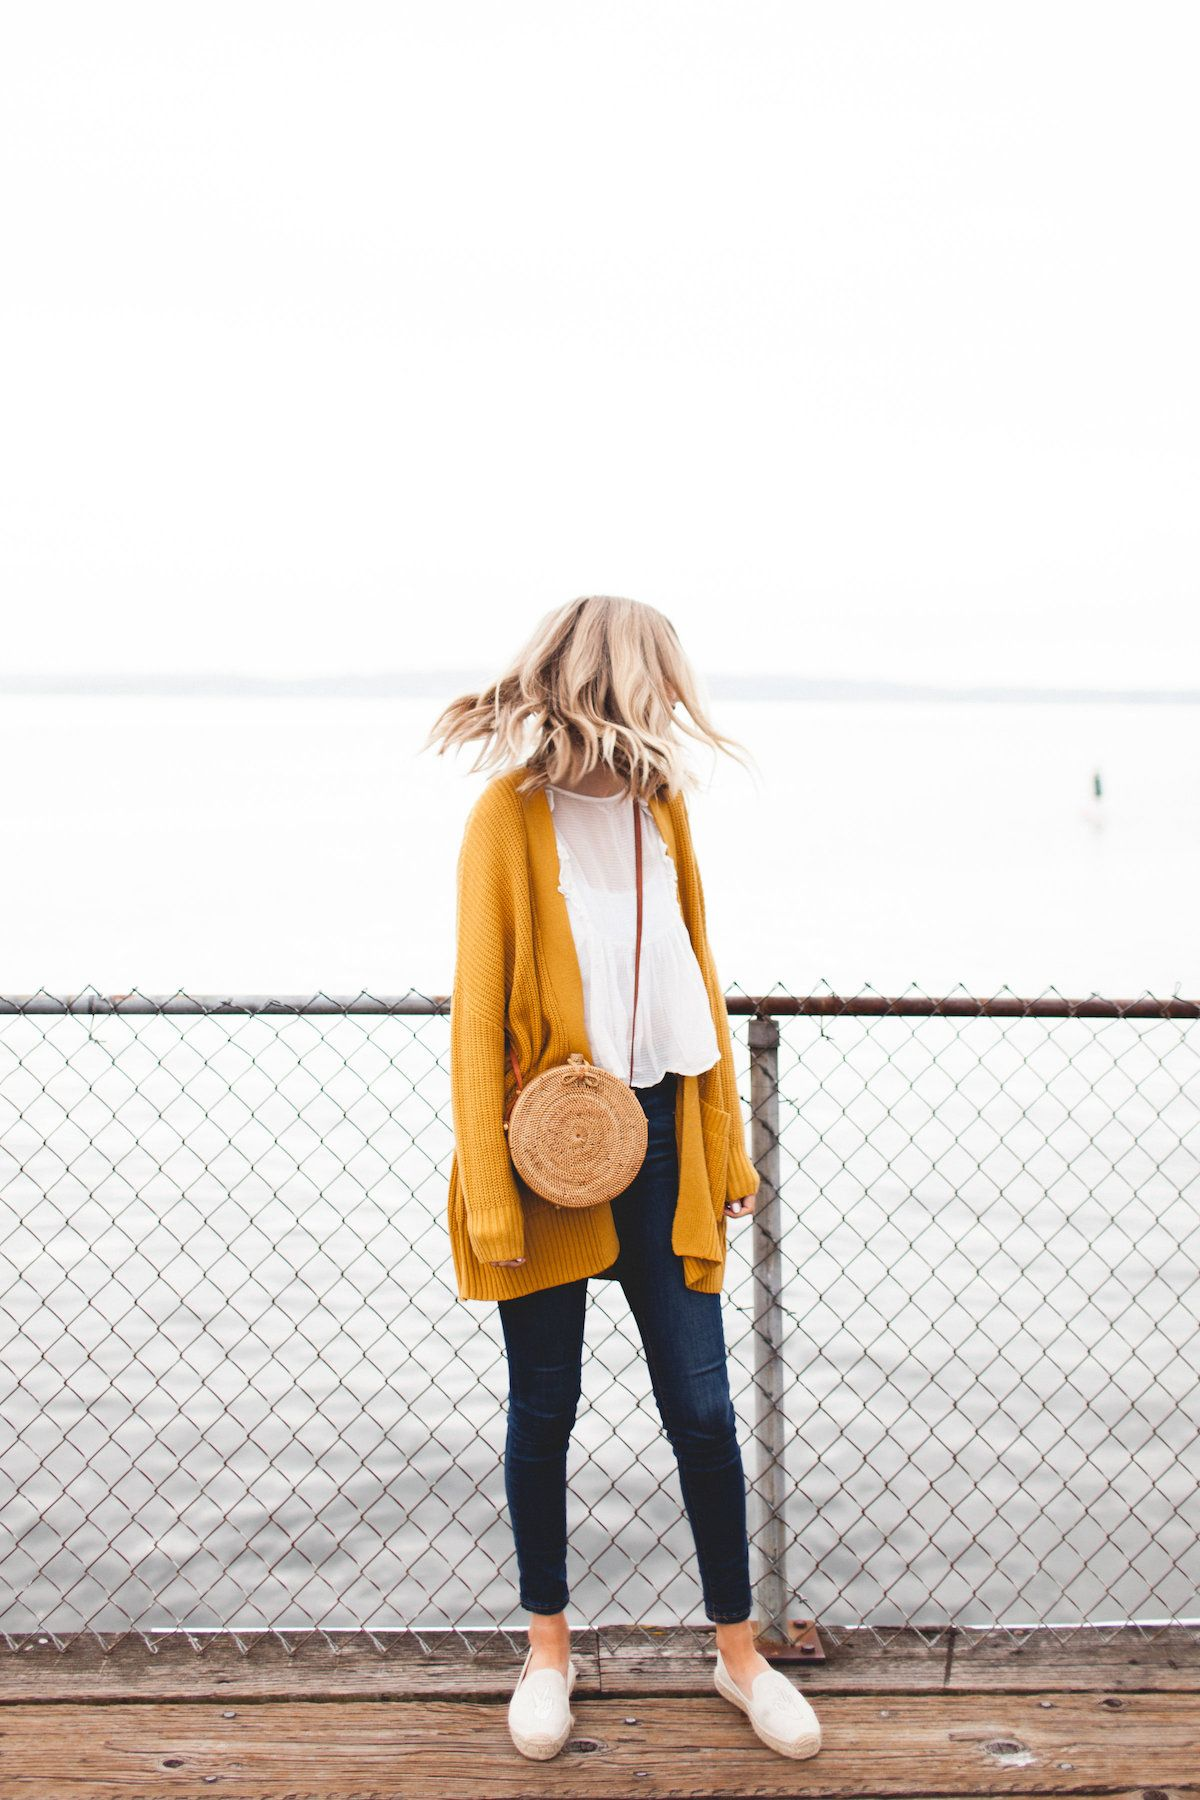 pin: imogennaomih |this might look super cute with a red leather bag instead of the woven, but still with the yellow cardigan and jeans, neutral top and neutral shoes|